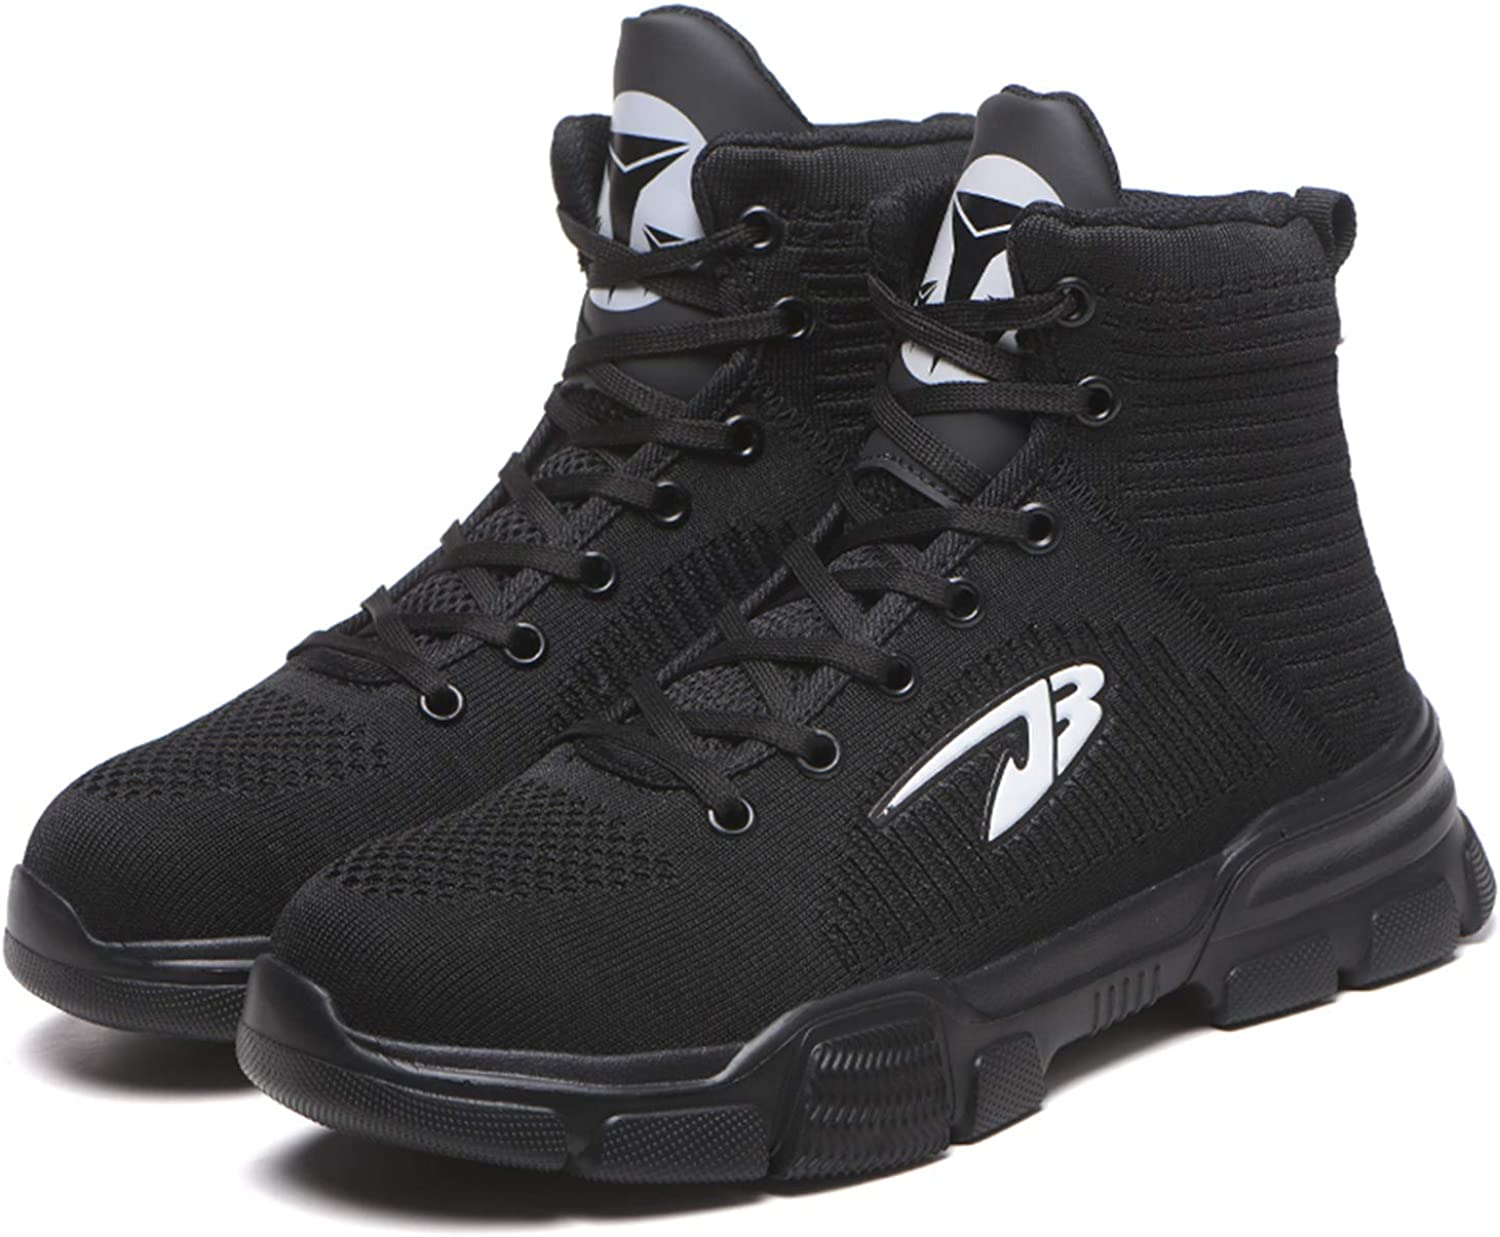 Men Safety Work Shoes Casual Steel Toe Breathable Trainers Hiking Ankle Boots US